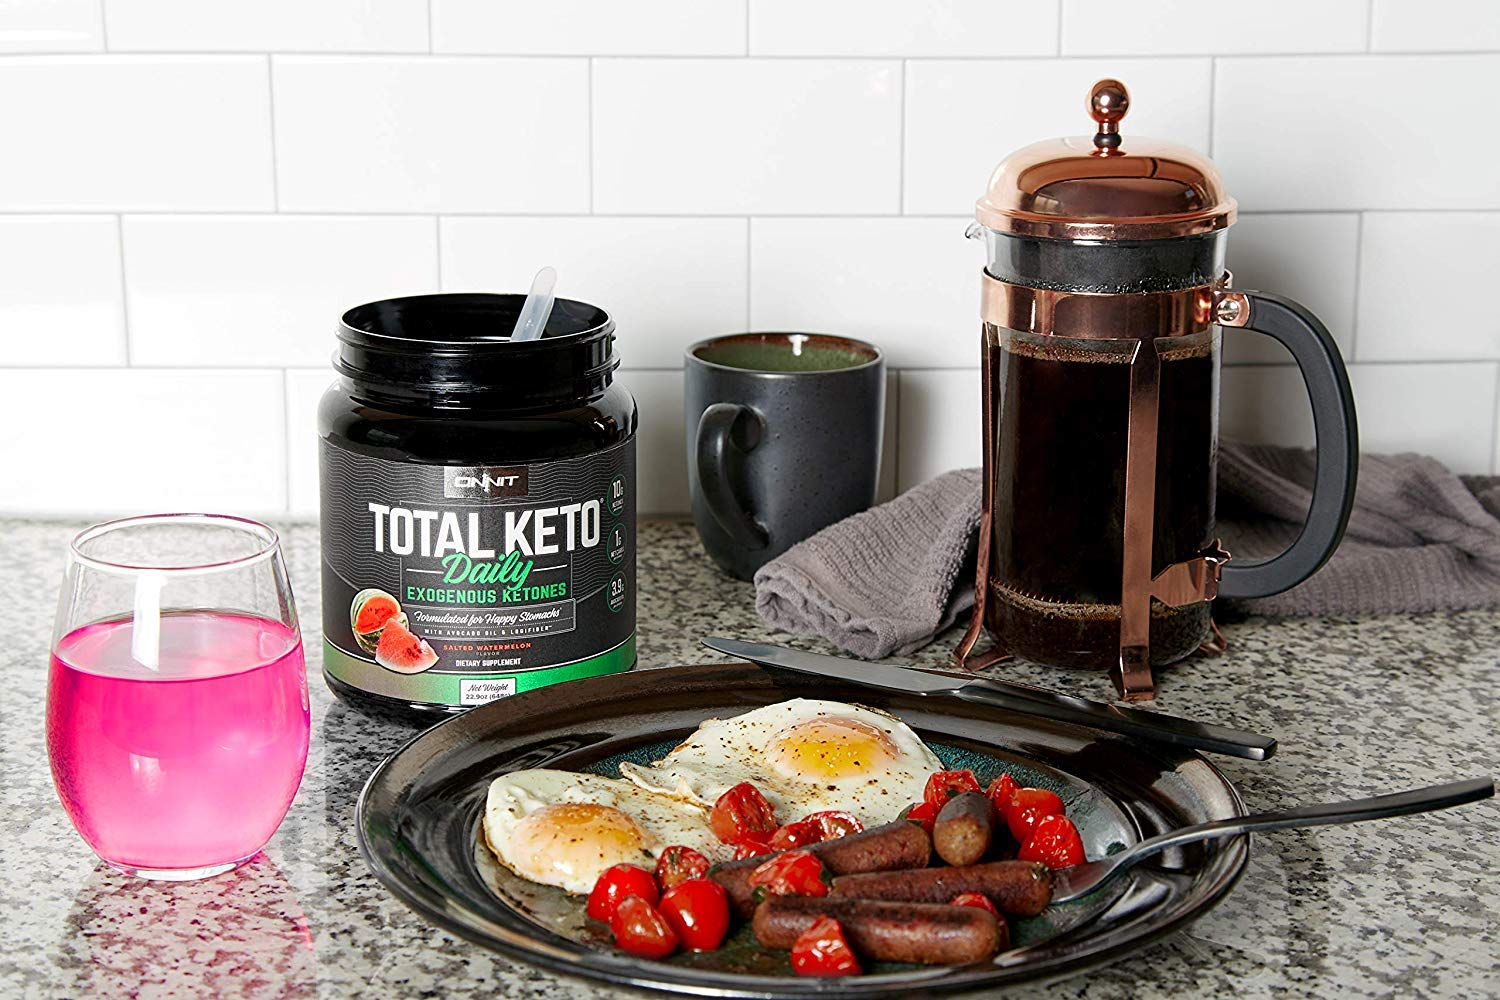 ONNIT Total Keto | Exogenous Ketones Supplement for Low Carb Diet | Premium Value Keto Supplement at 300g Ketone per Tub | Perfect Keto Fuel for Keto Shakes | Watermelon Flavor | 30 Servings by ONNIT (Image #8)